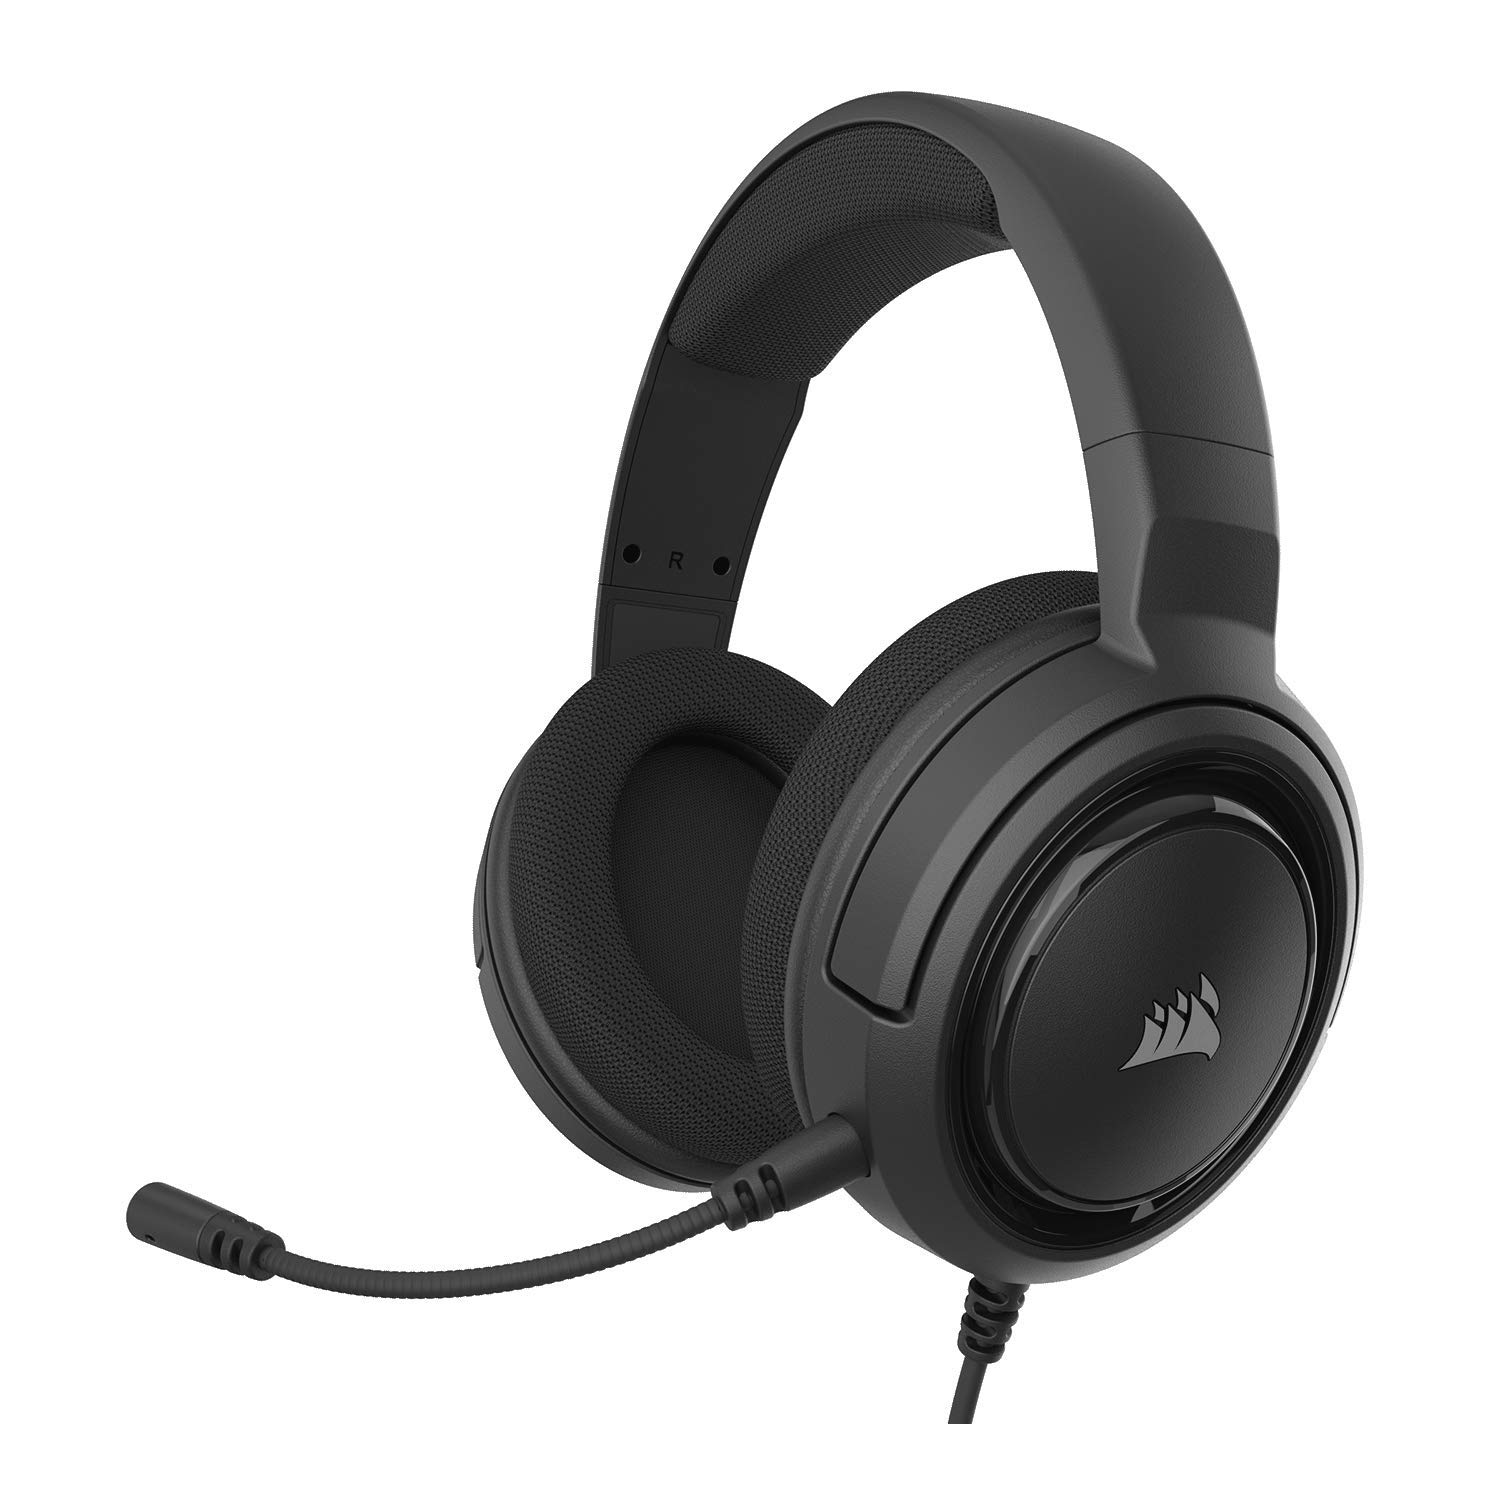 Corsair HS35 - Stereo Gaming Headset - Memory Foam Earcups - Headphones Work with PC, Mac, Xbox One, PS4, Switch, iOS and Android - Carbon by Corsair